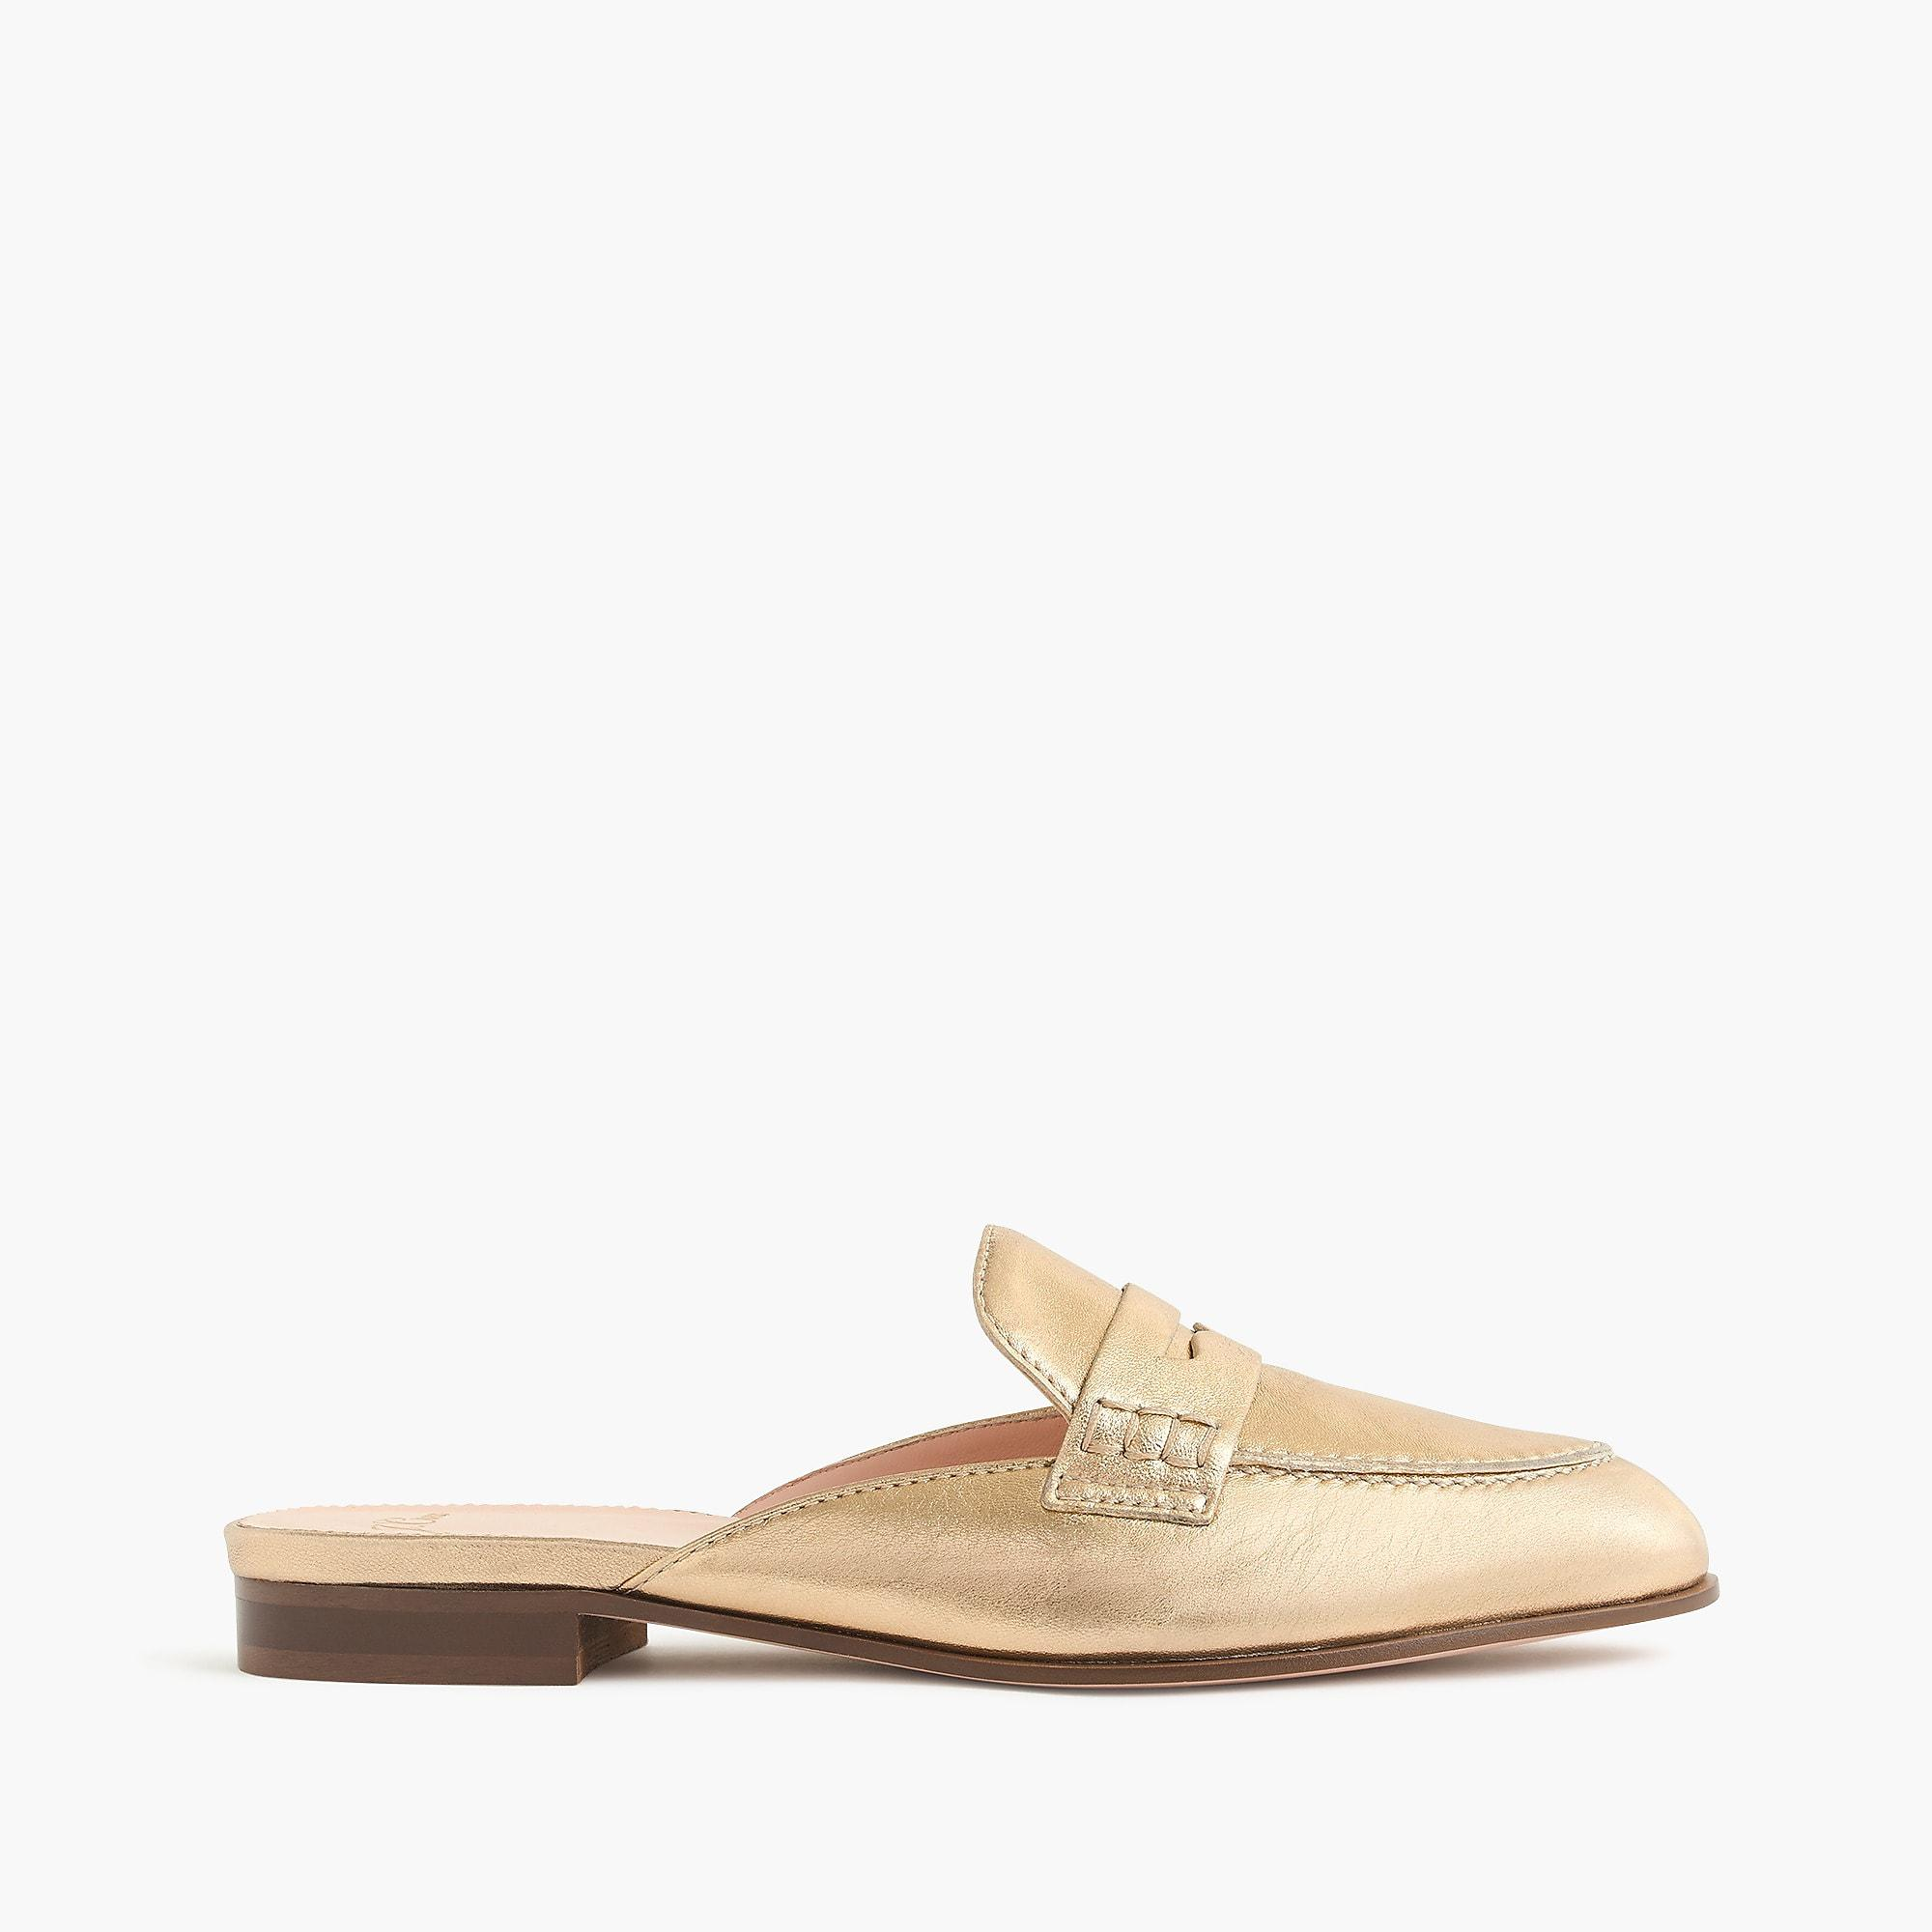 7466a15aa61 Lyst - J.Crew Academy Penny-loafer Mules In Metallic Leather in Metallic